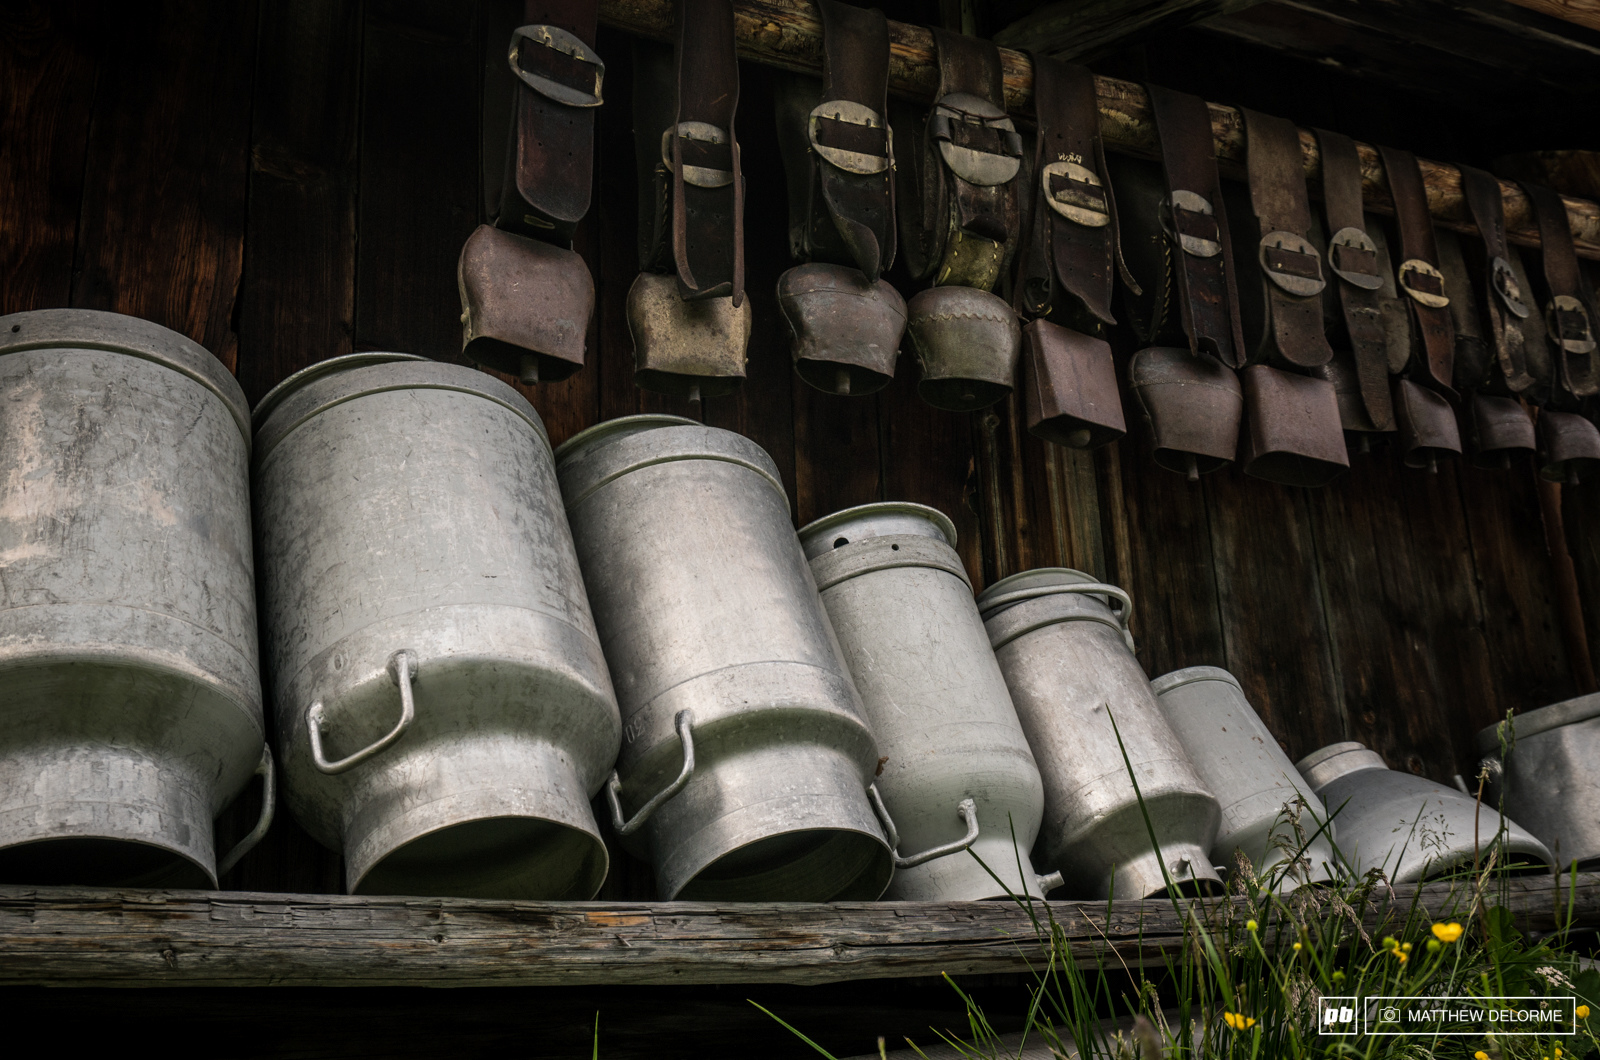 When there are this many milk jugs and cow bells about you can only be in Switzerland.